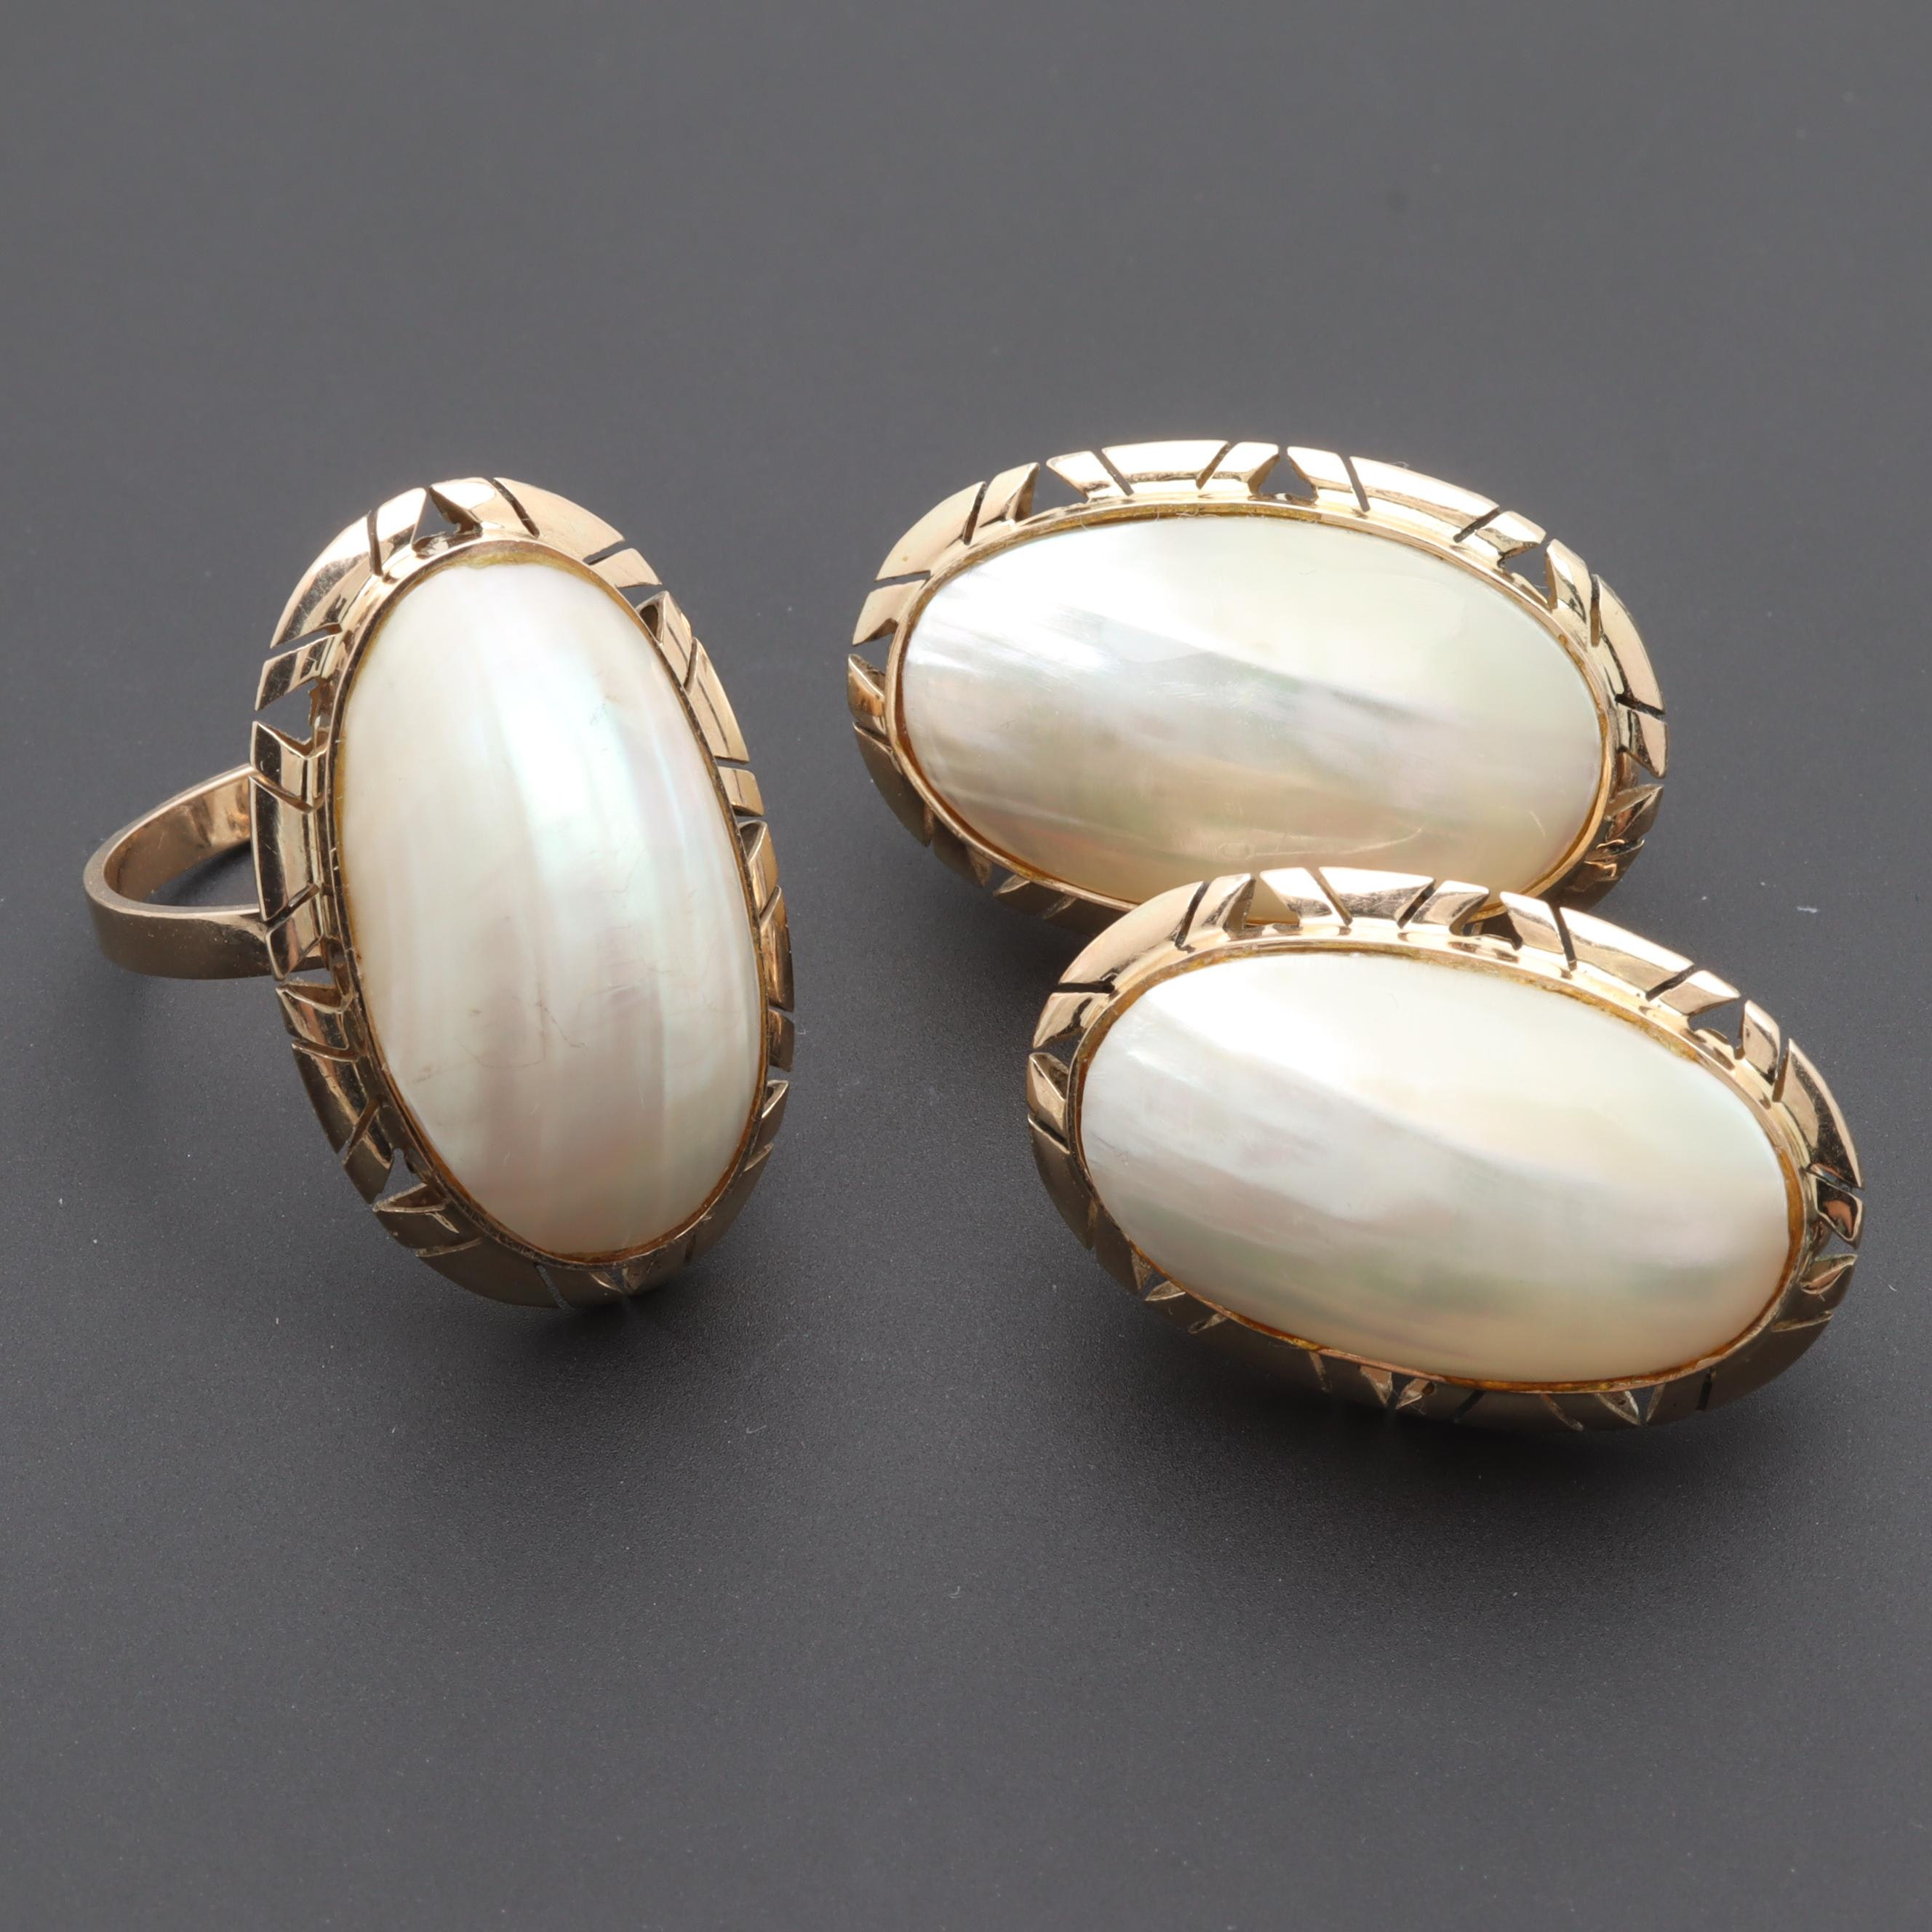 10K Yellow Gold Cultured Pearl Ring and Earring Selection